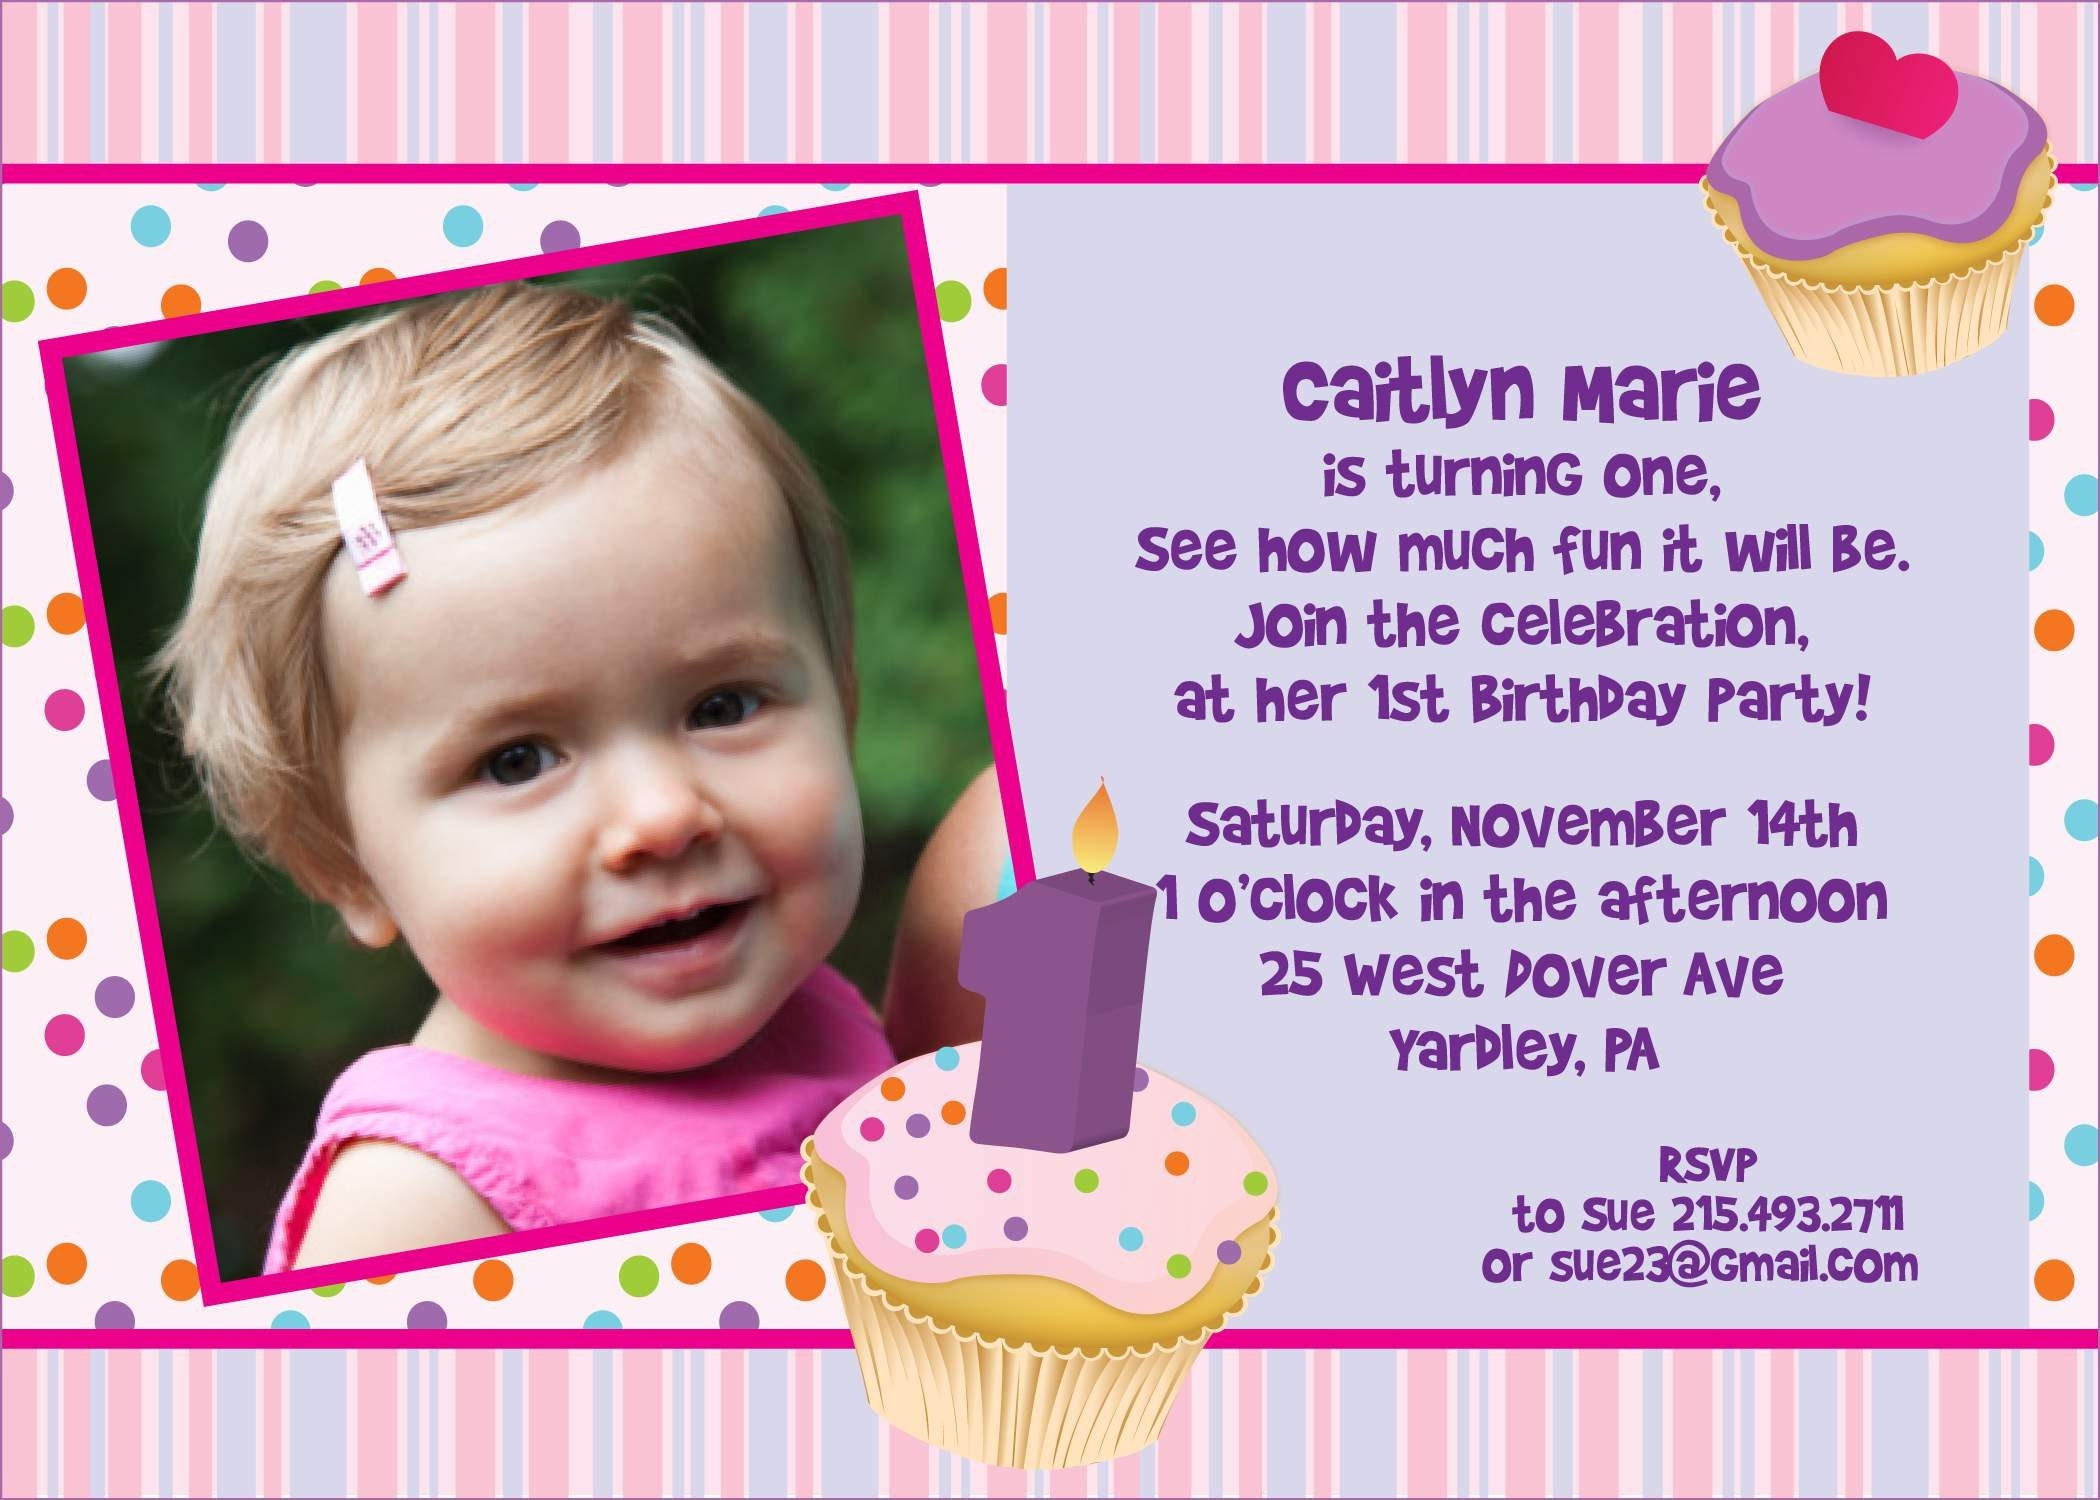 baby birthday invitation card template ; baby-first-birthday-invitation-templates-free-alanarasbach-for-1st-birthday-invitation-cards-templates-free